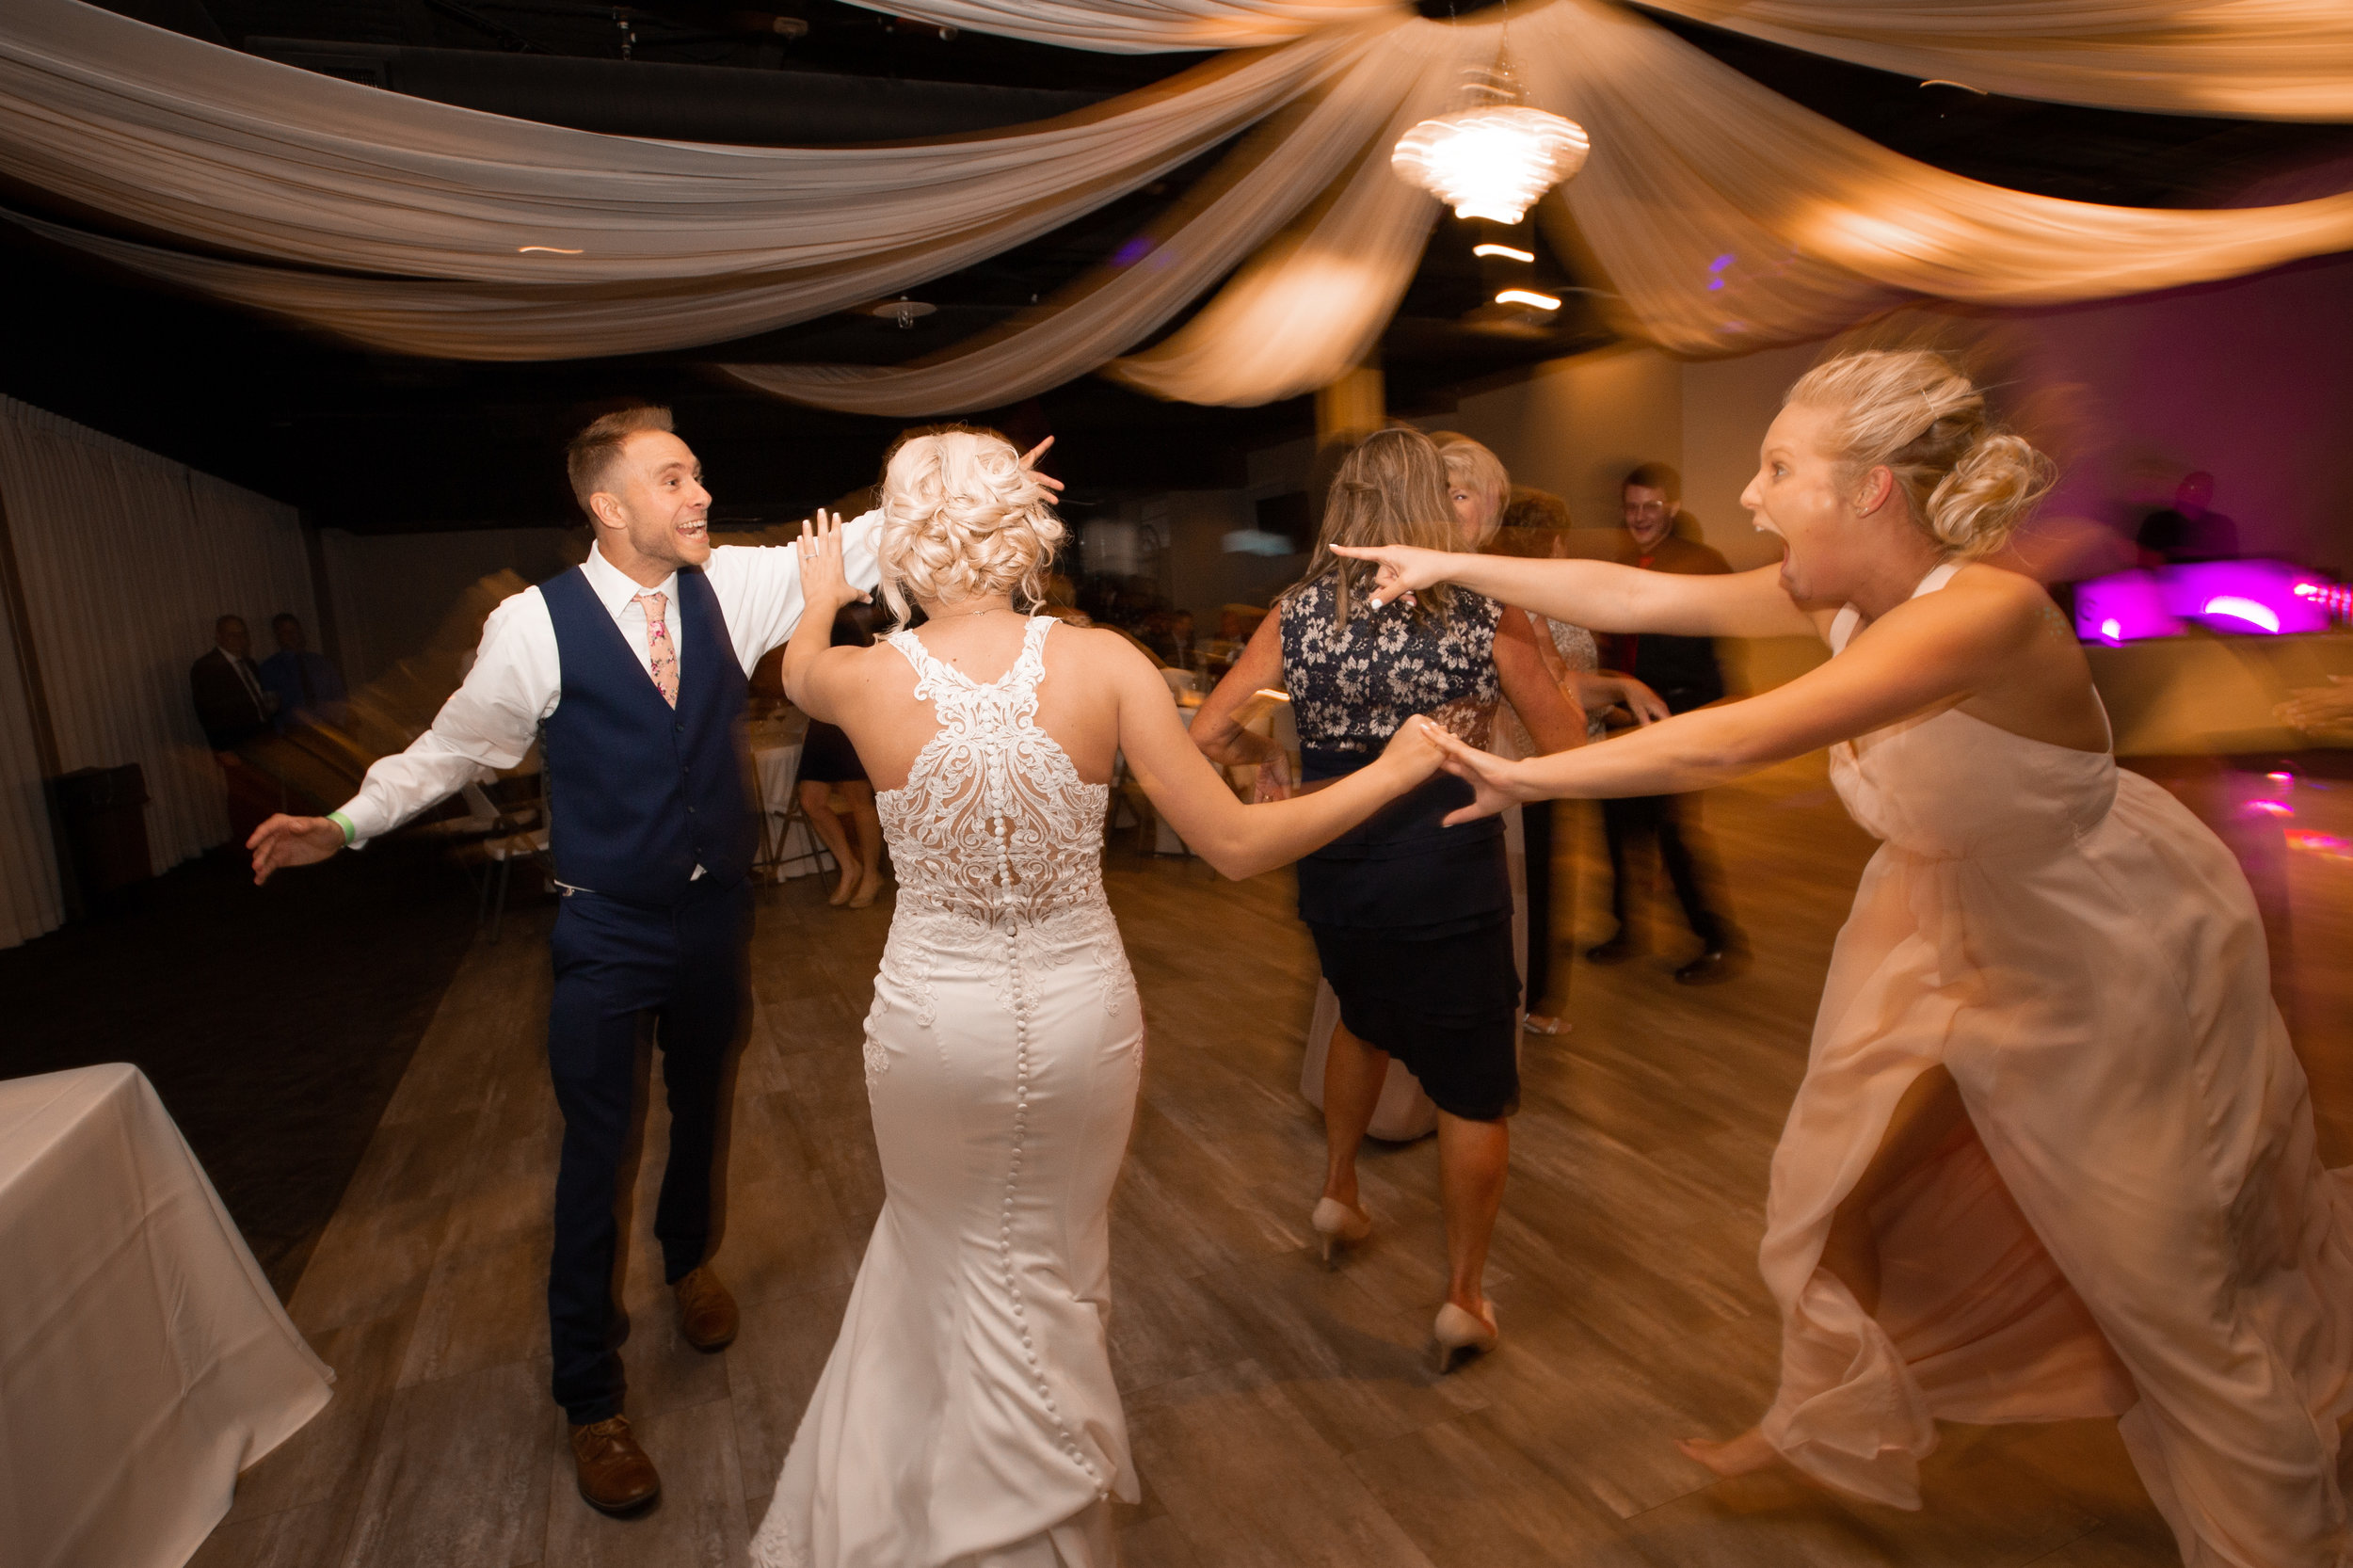 C_Wedding_Tronick, Megan & Andrew_09.22.18-959.JPG